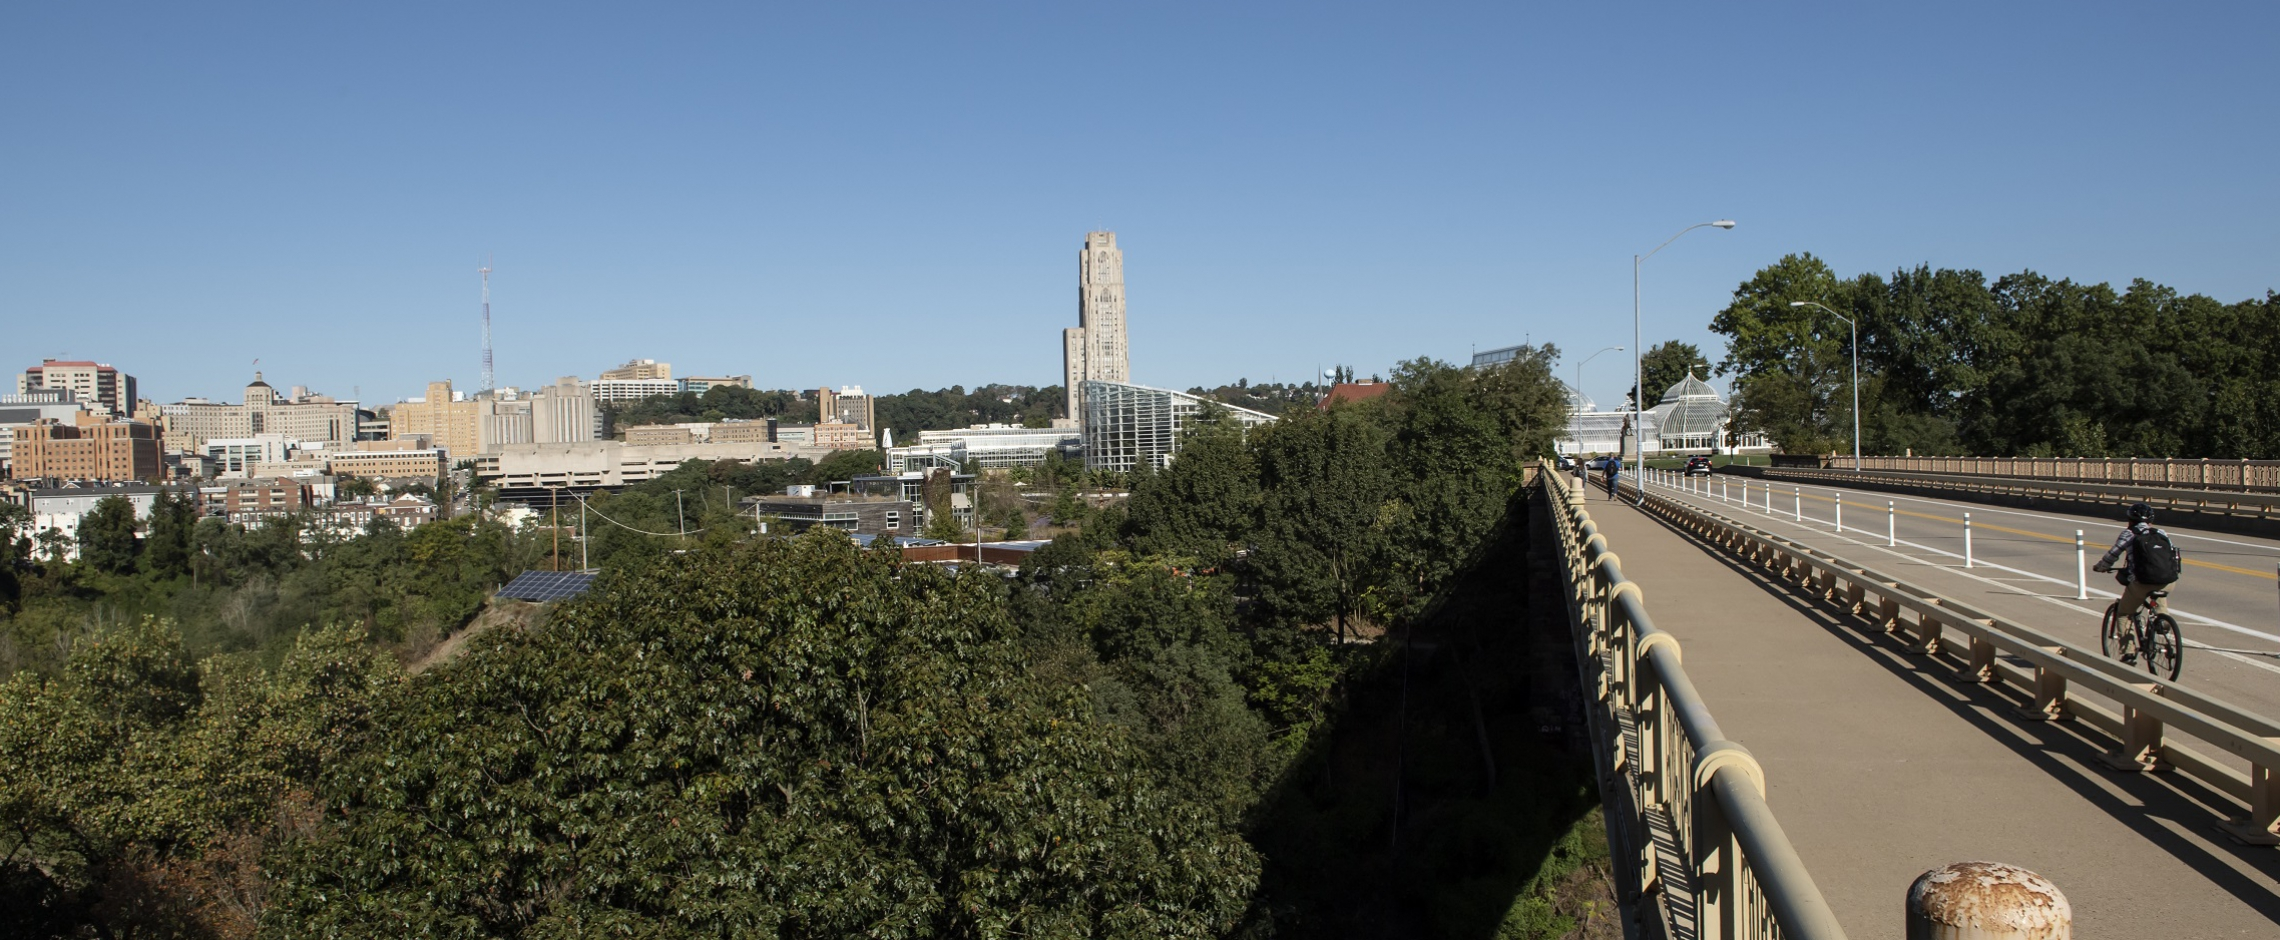 Bridge to Campus with Cathedral of Learning in background